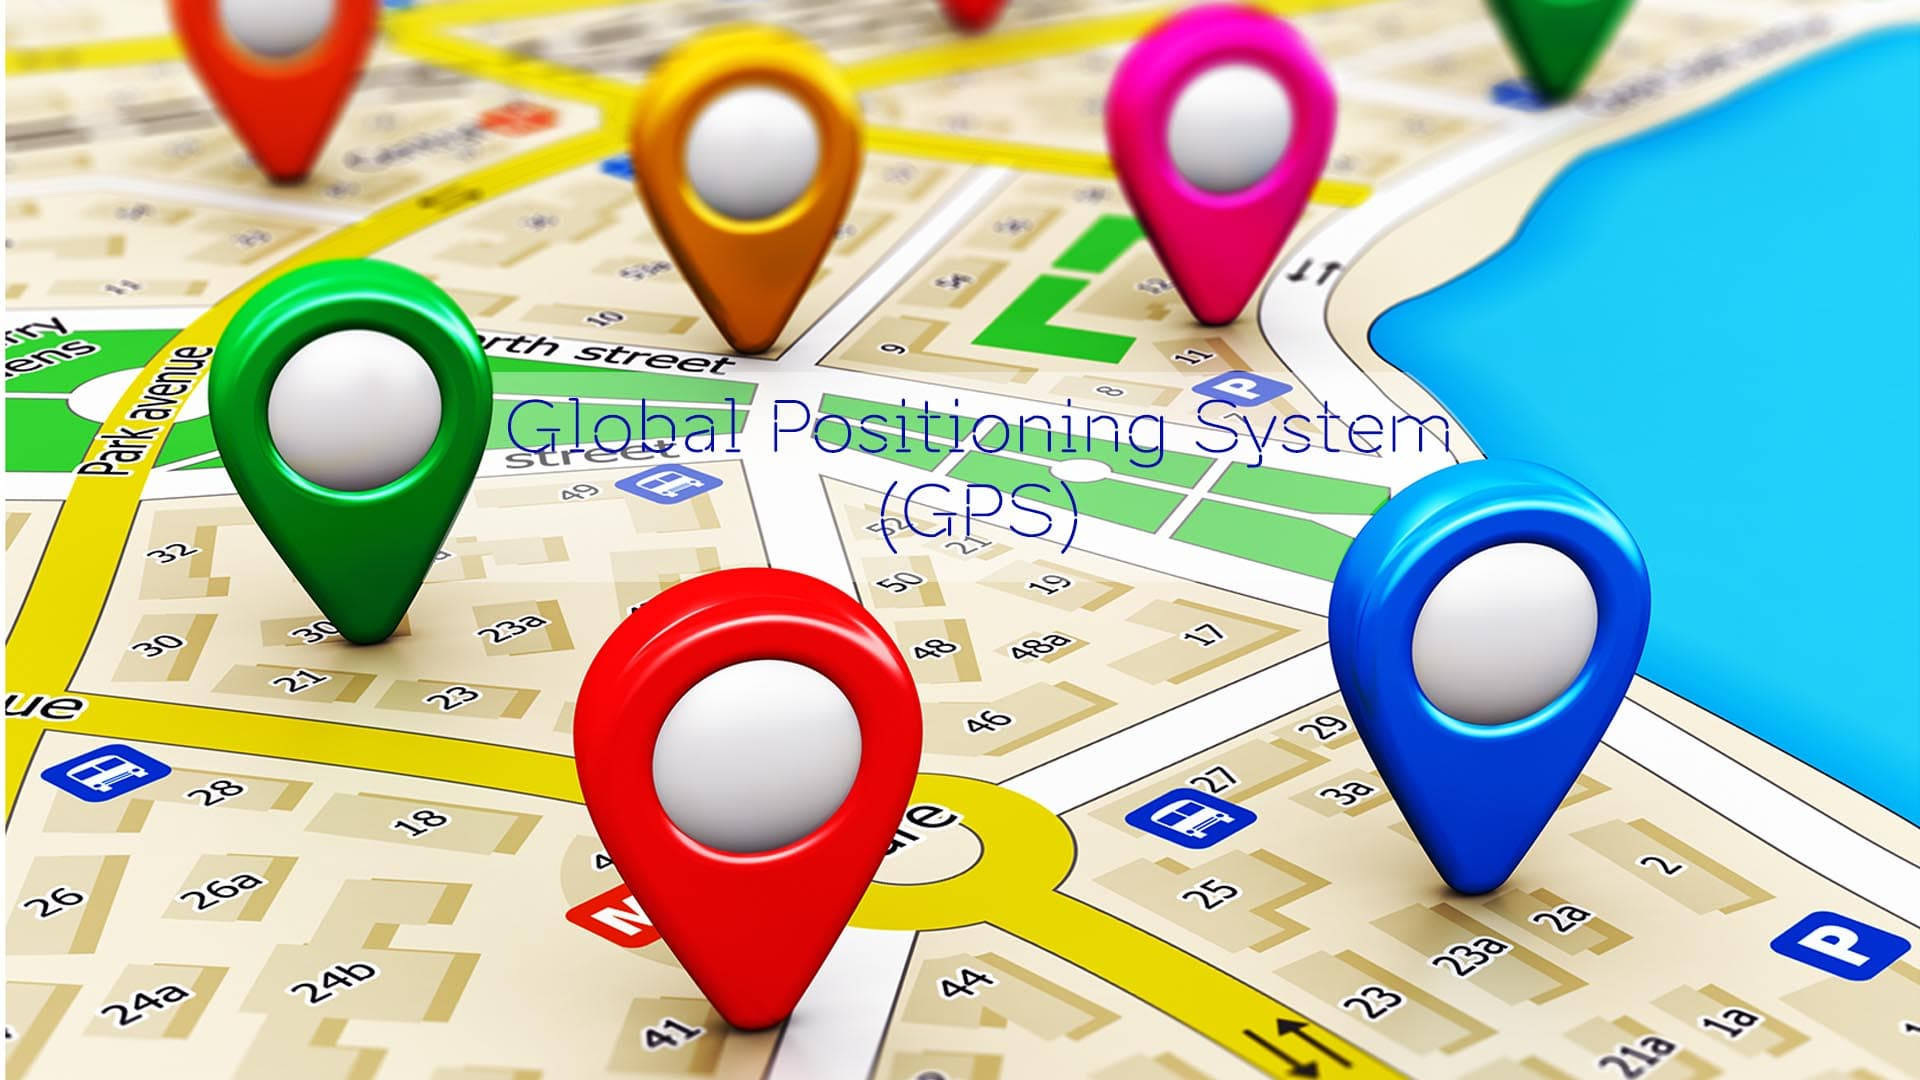 GPS(Global Positioning System) Mandatory Compliance of The Mobile Association